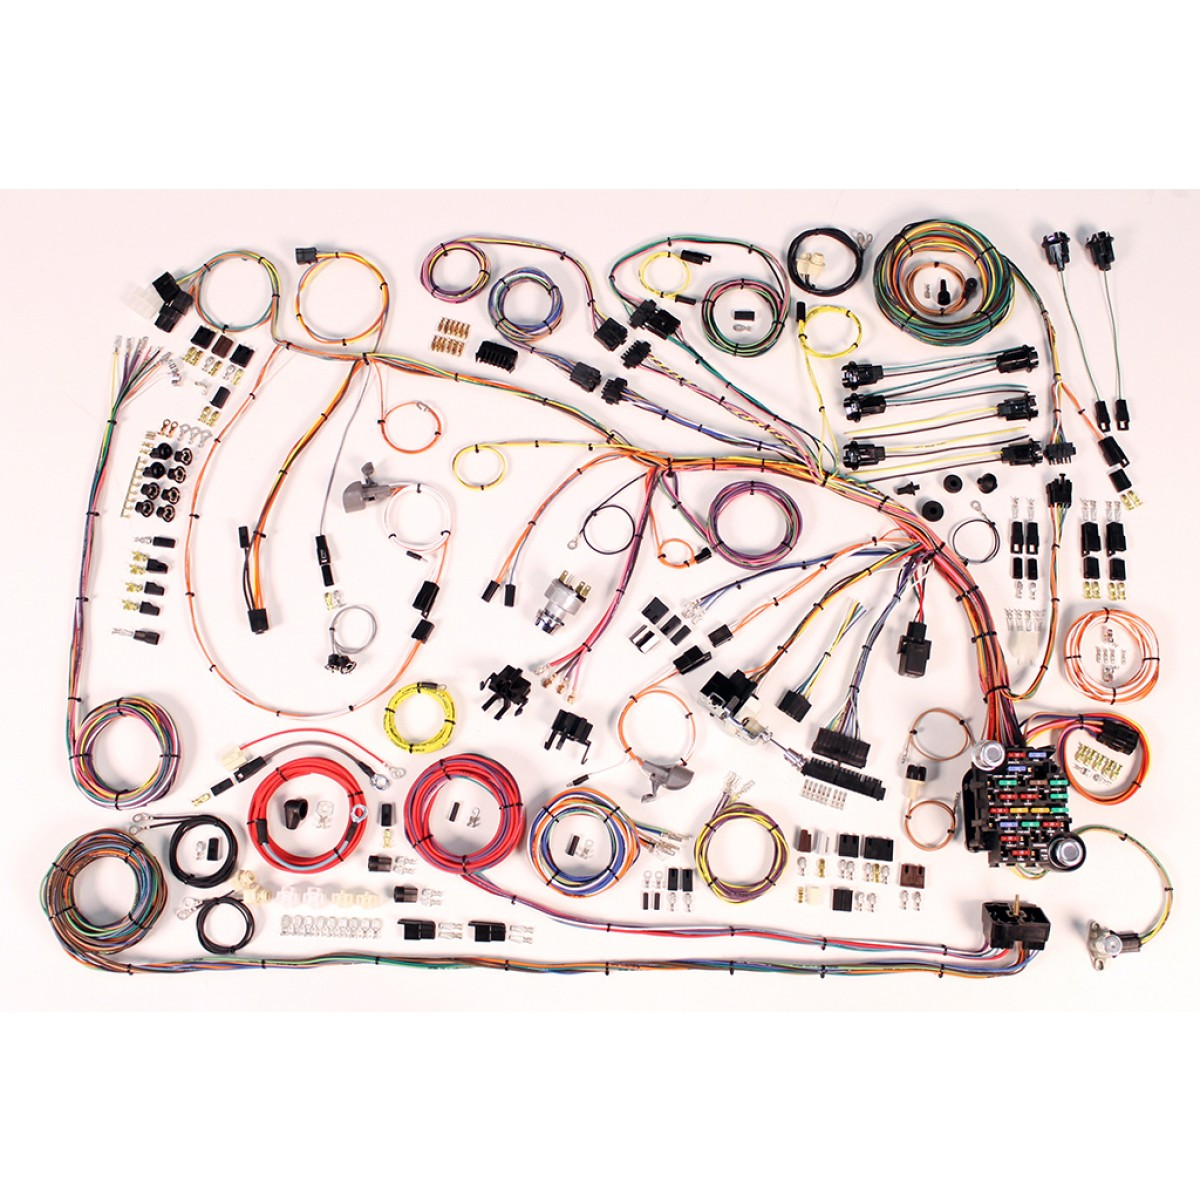 wiring harness kit 1966 1968 impala part 510372 66 68 impala full wire harness 510372 1966 1968 impala wire harness complete wiring harness kit 1966 1965 impala wiring harness at honlapkeszites.co